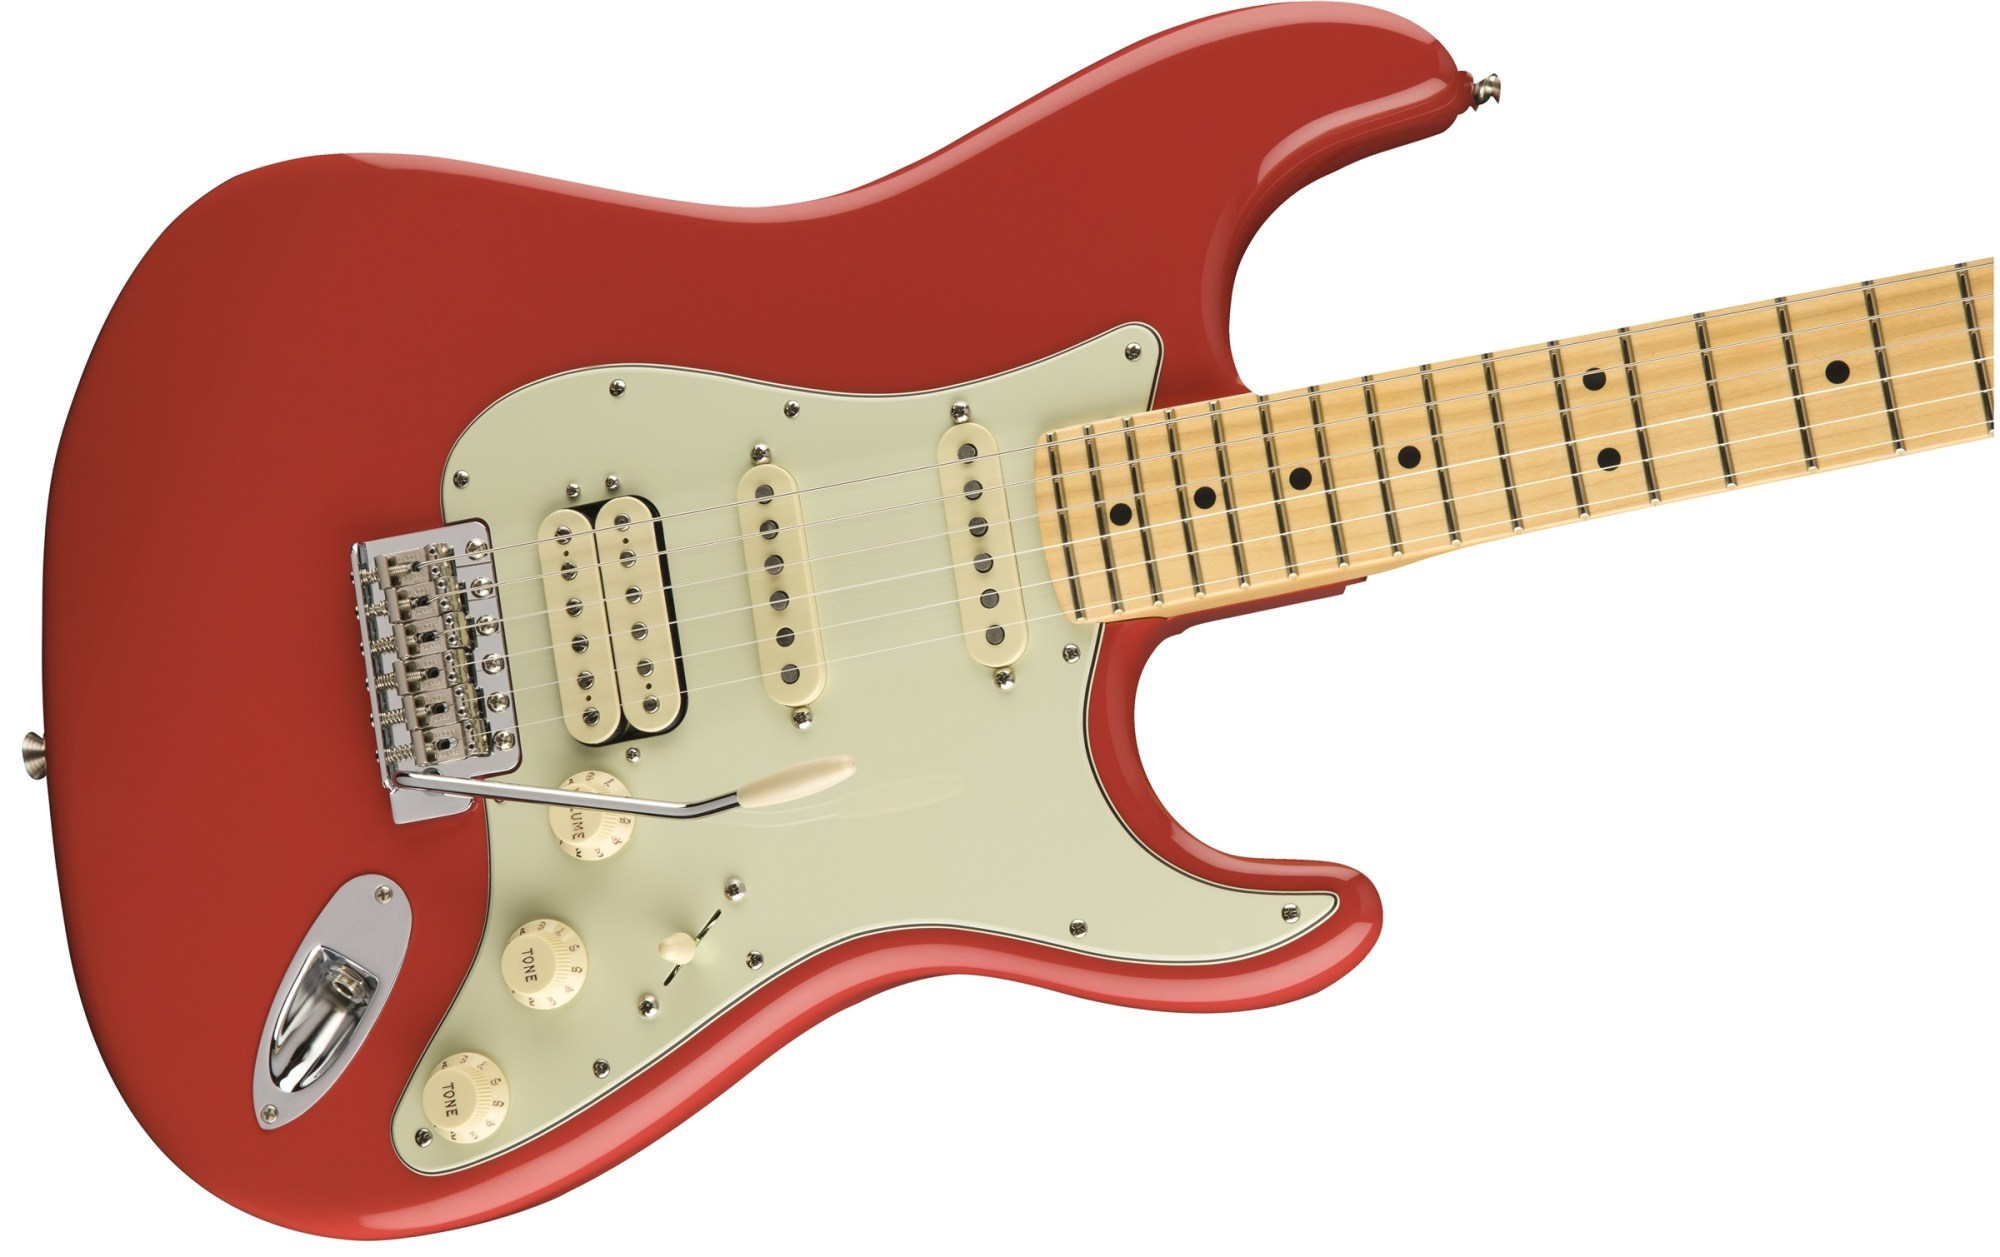 hight resolution of fender s1 hh tele wiring diagram telecaster wiring diagram squier strat guitar wiring diagram fender standard stratocaster wiring diagram